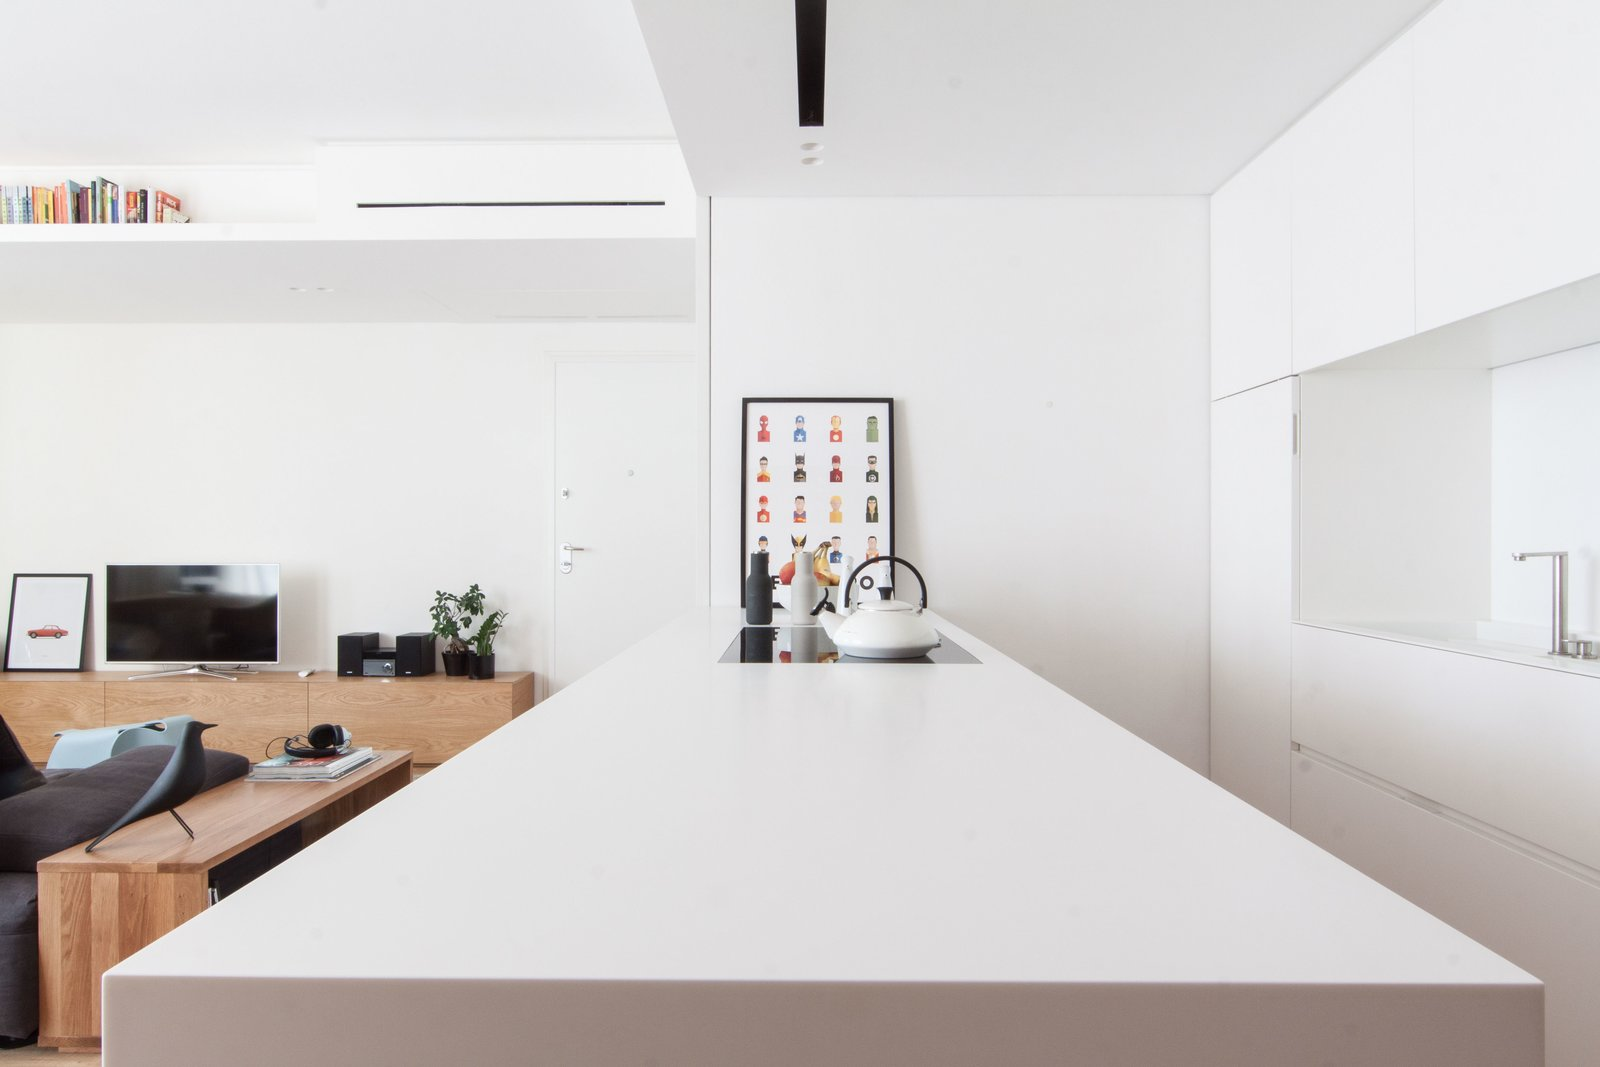 Kitchen, Medium Hardwood Floor, Ceiling Lighting, White Cabinet, Refrigerator, Wall Oven, Cooktops, Microwave, Dishwasher, and Undermount Sink  Interior LP by Didonè Comacchio